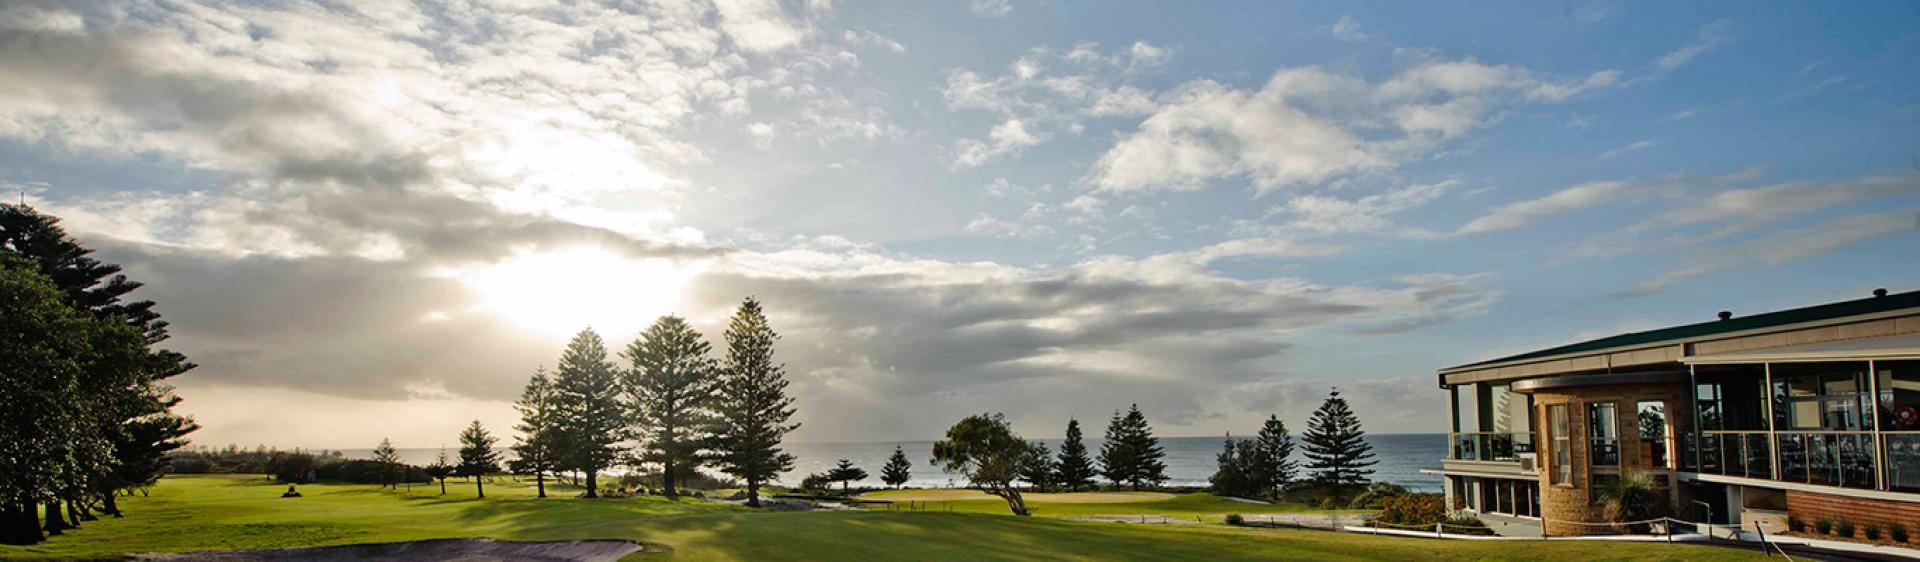 Shelly Beach Golf Club, Central Coast